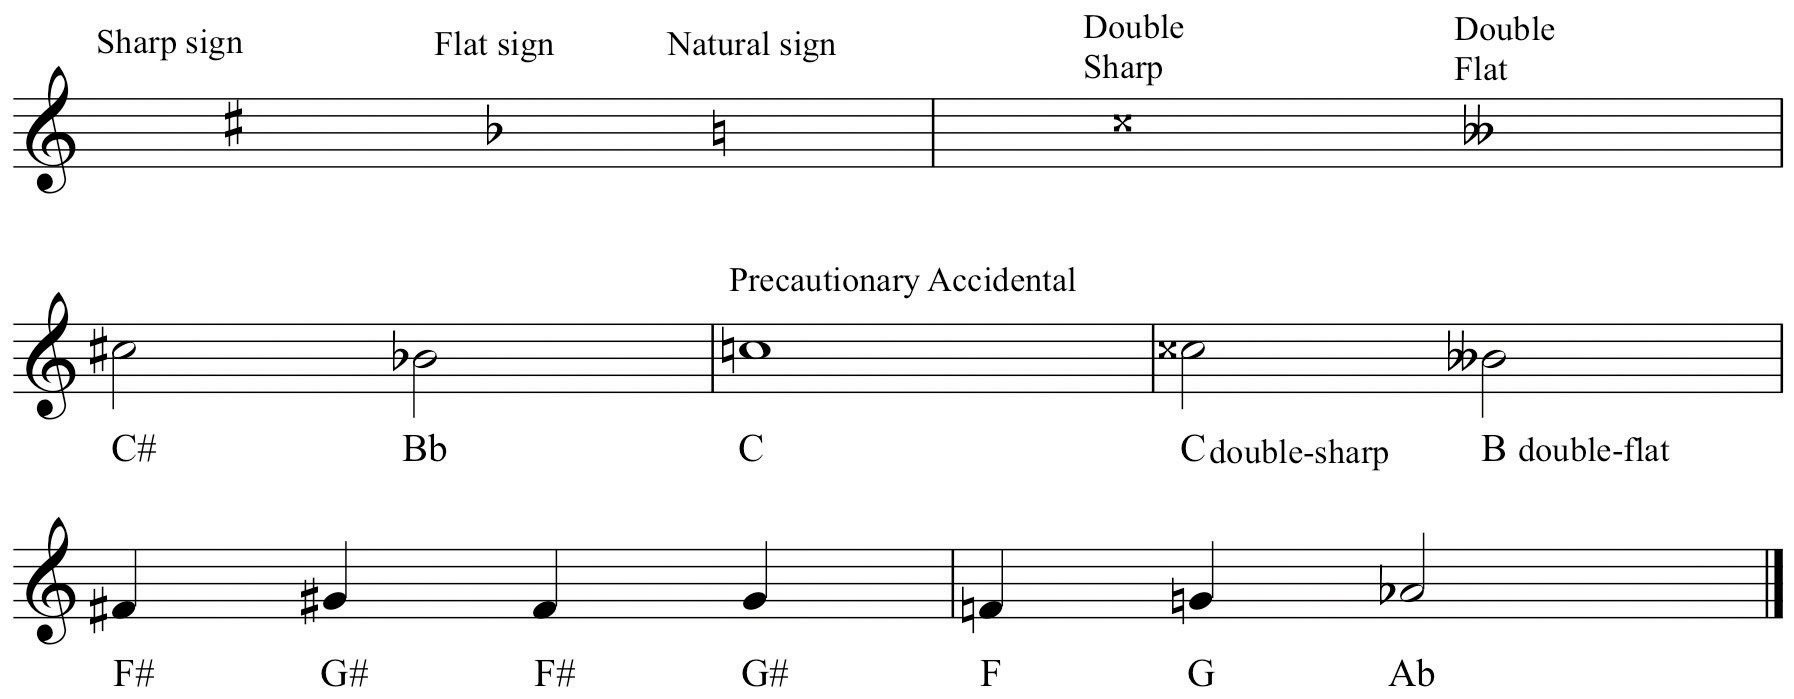 accidentals and measures